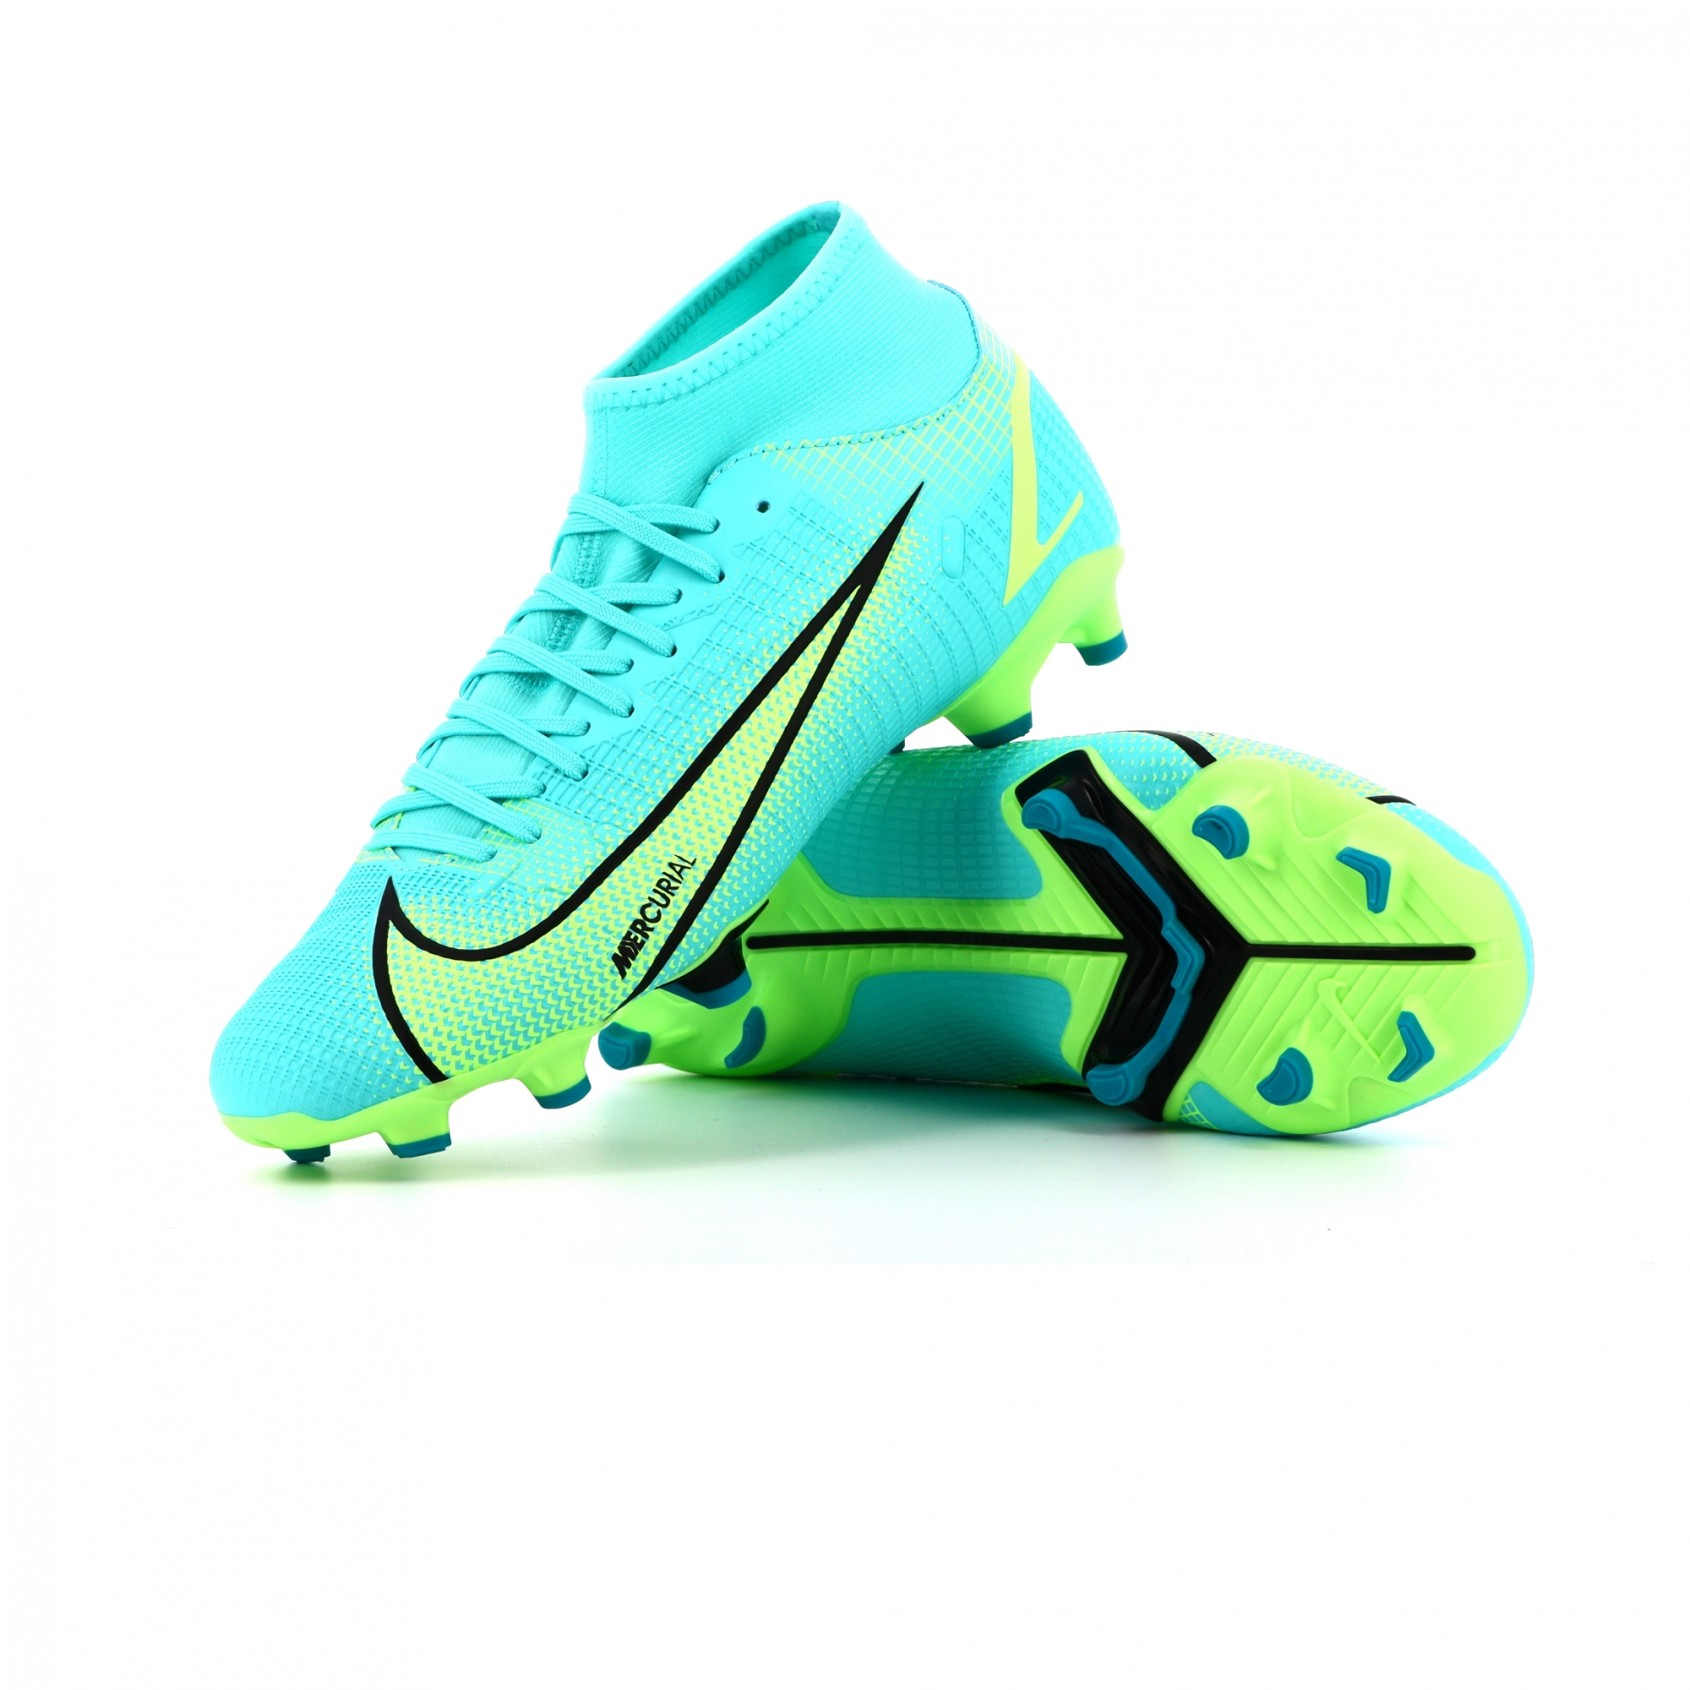 NIKE MERCURIAL SUPERFLY 8 ACADEMY MOULEE presentation